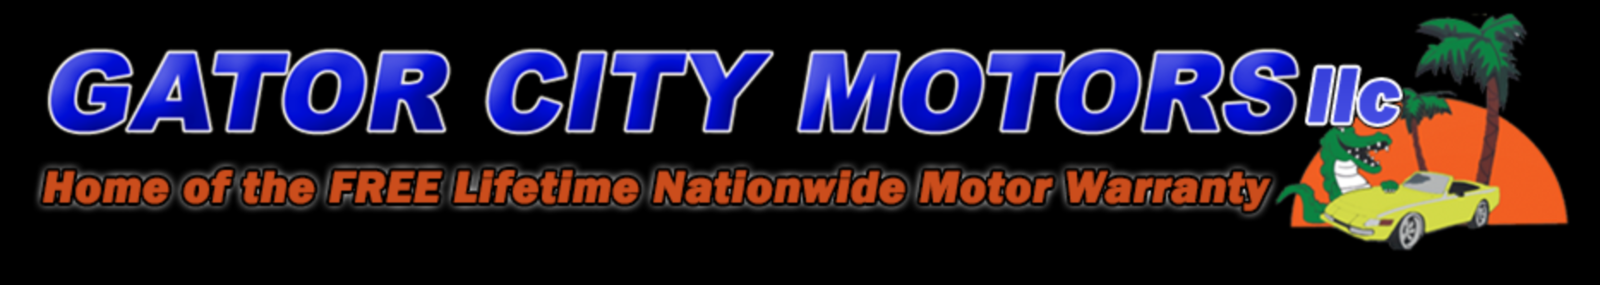 gator city motors llc gainesville fl read consumer reviews browse used and new cars for sale. Black Bedroom Furniture Sets. Home Design Ideas